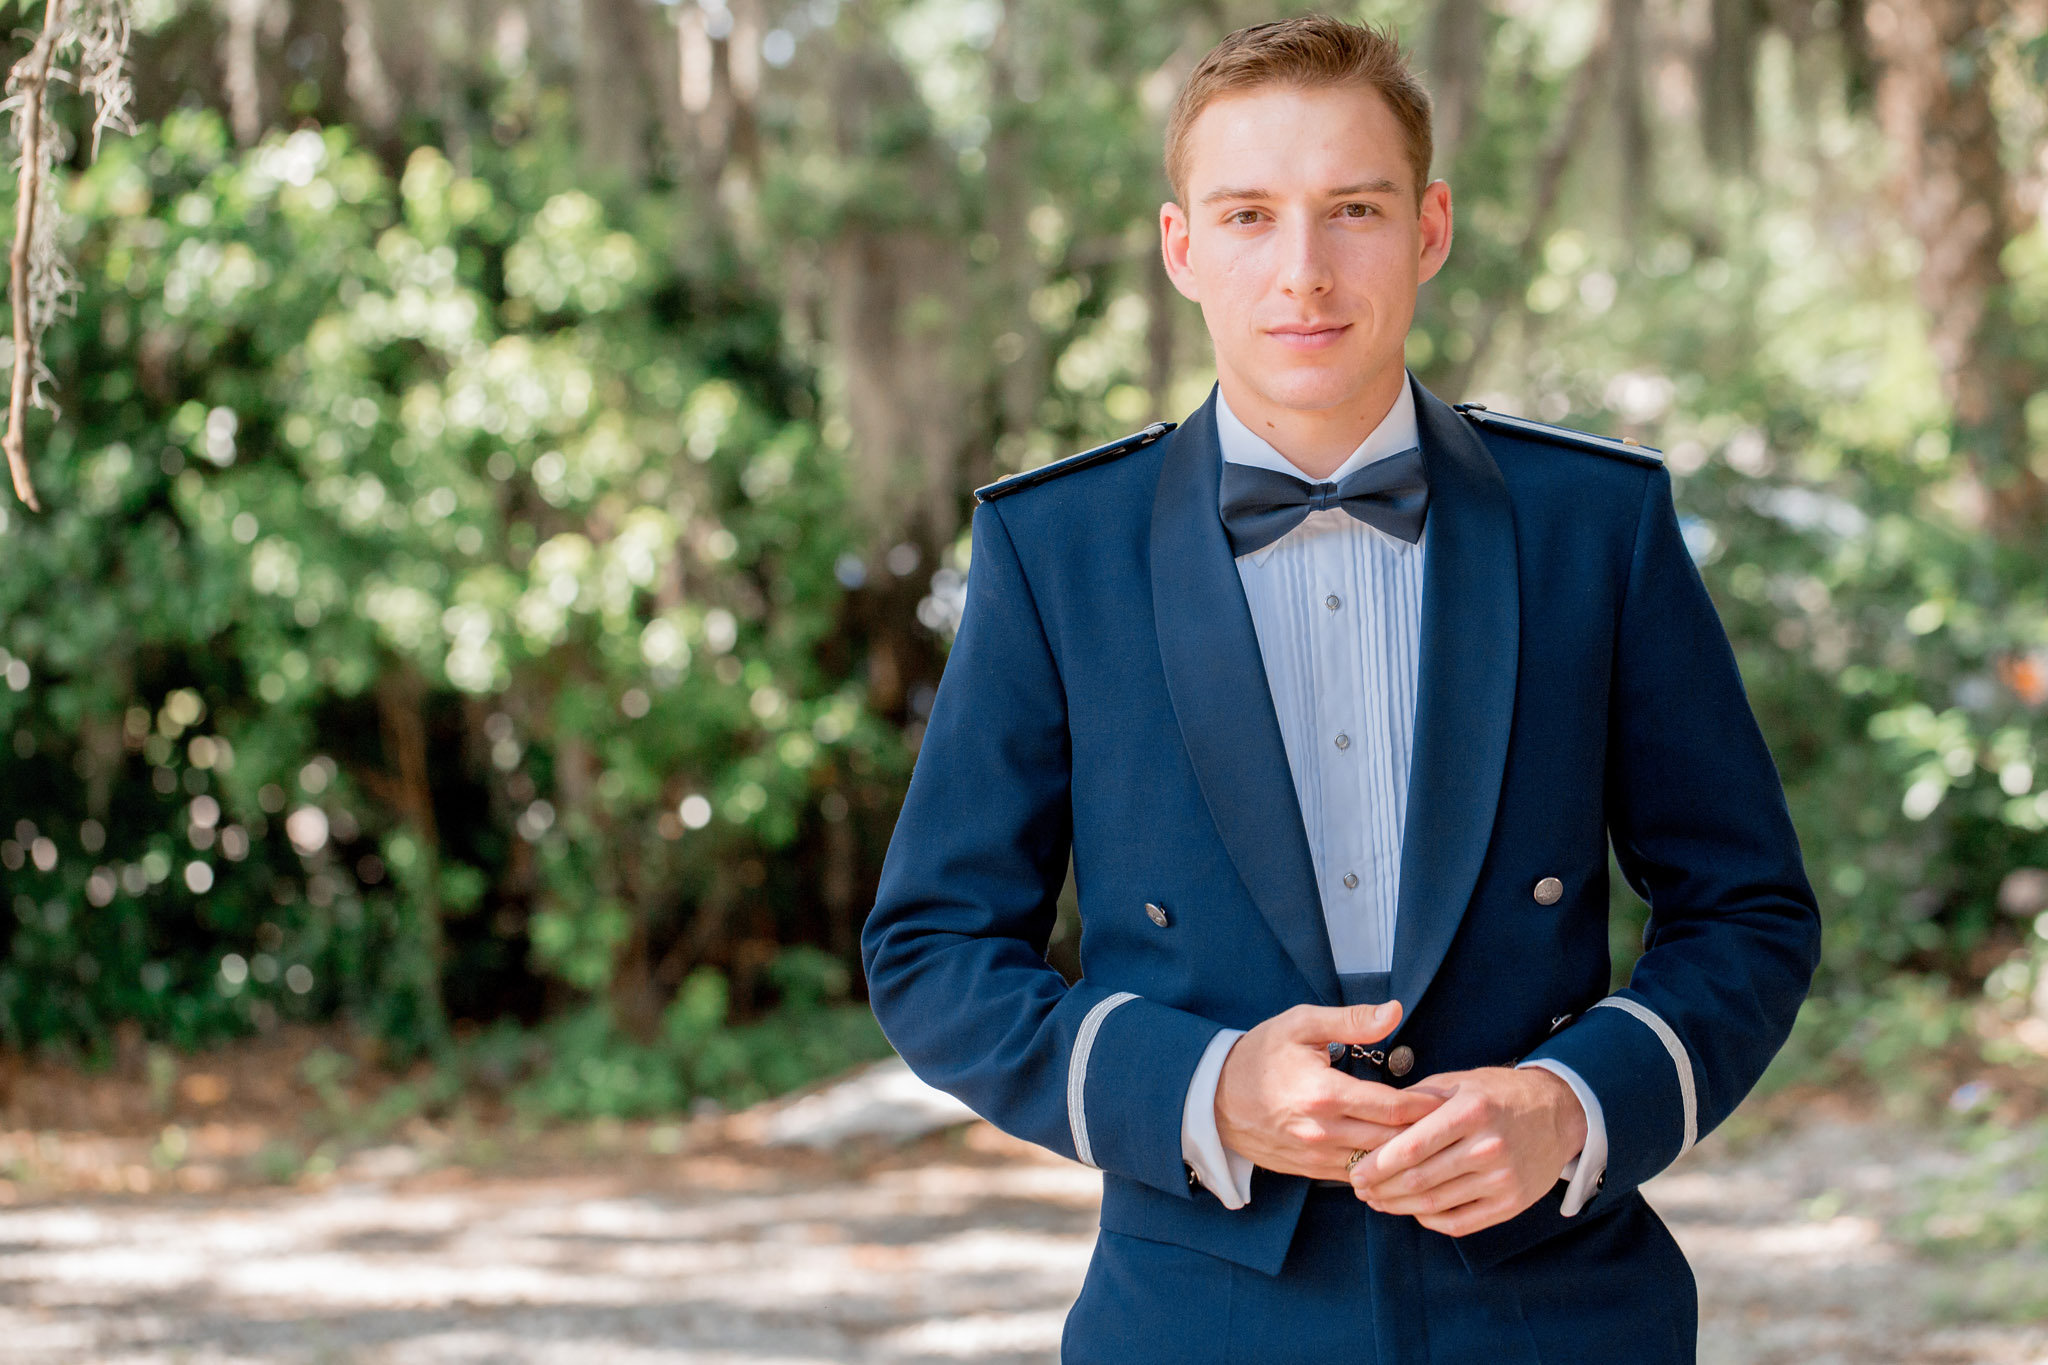 Groom in military attire at Beaufort wedding